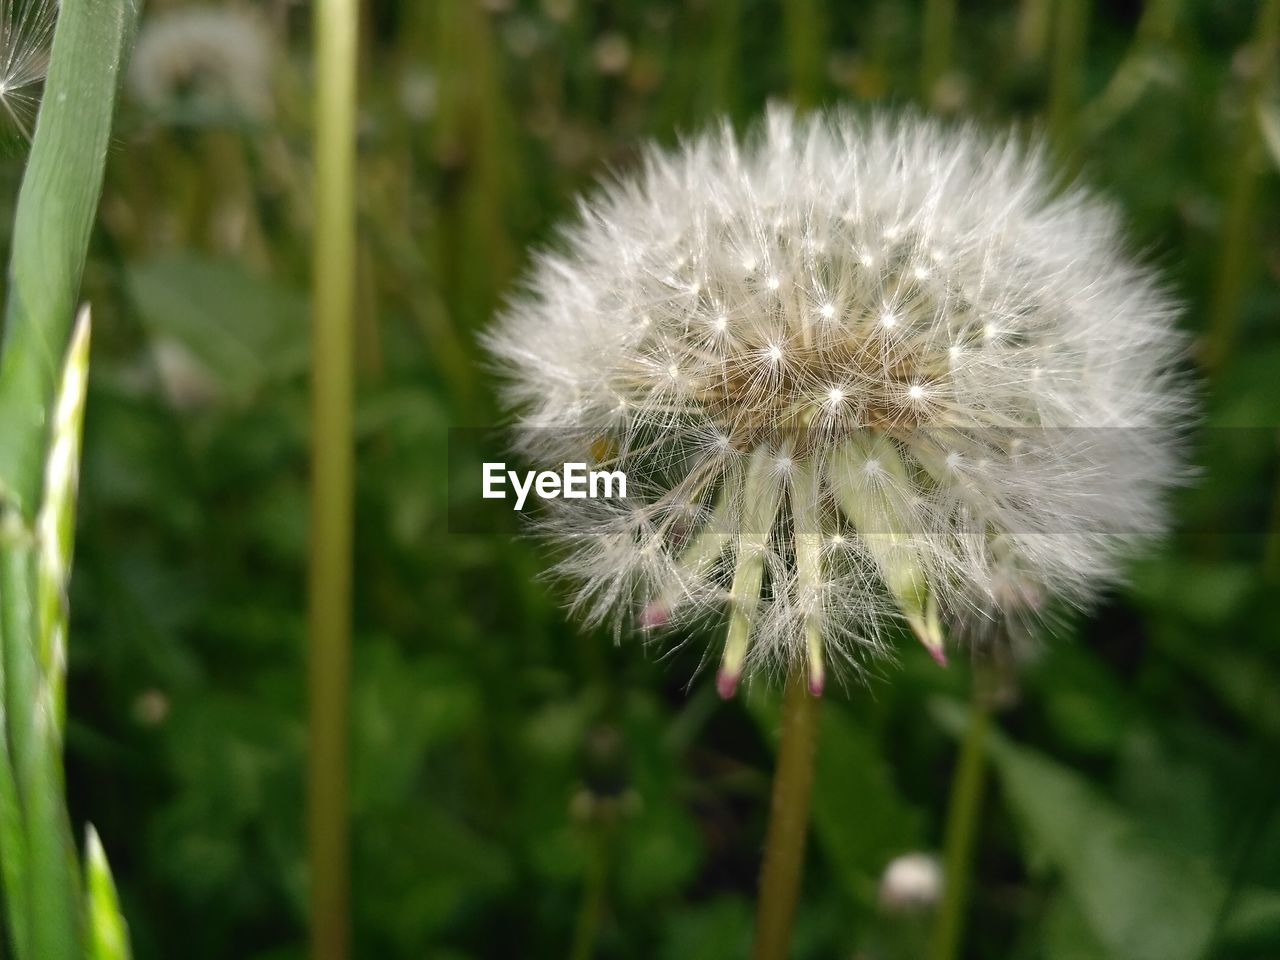 flower, growth, nature, fragility, dandelion, plant, beauty in nature, softness, freshness, flower head, uncultivated, focus on foreground, close-up, no people, outdoors, day